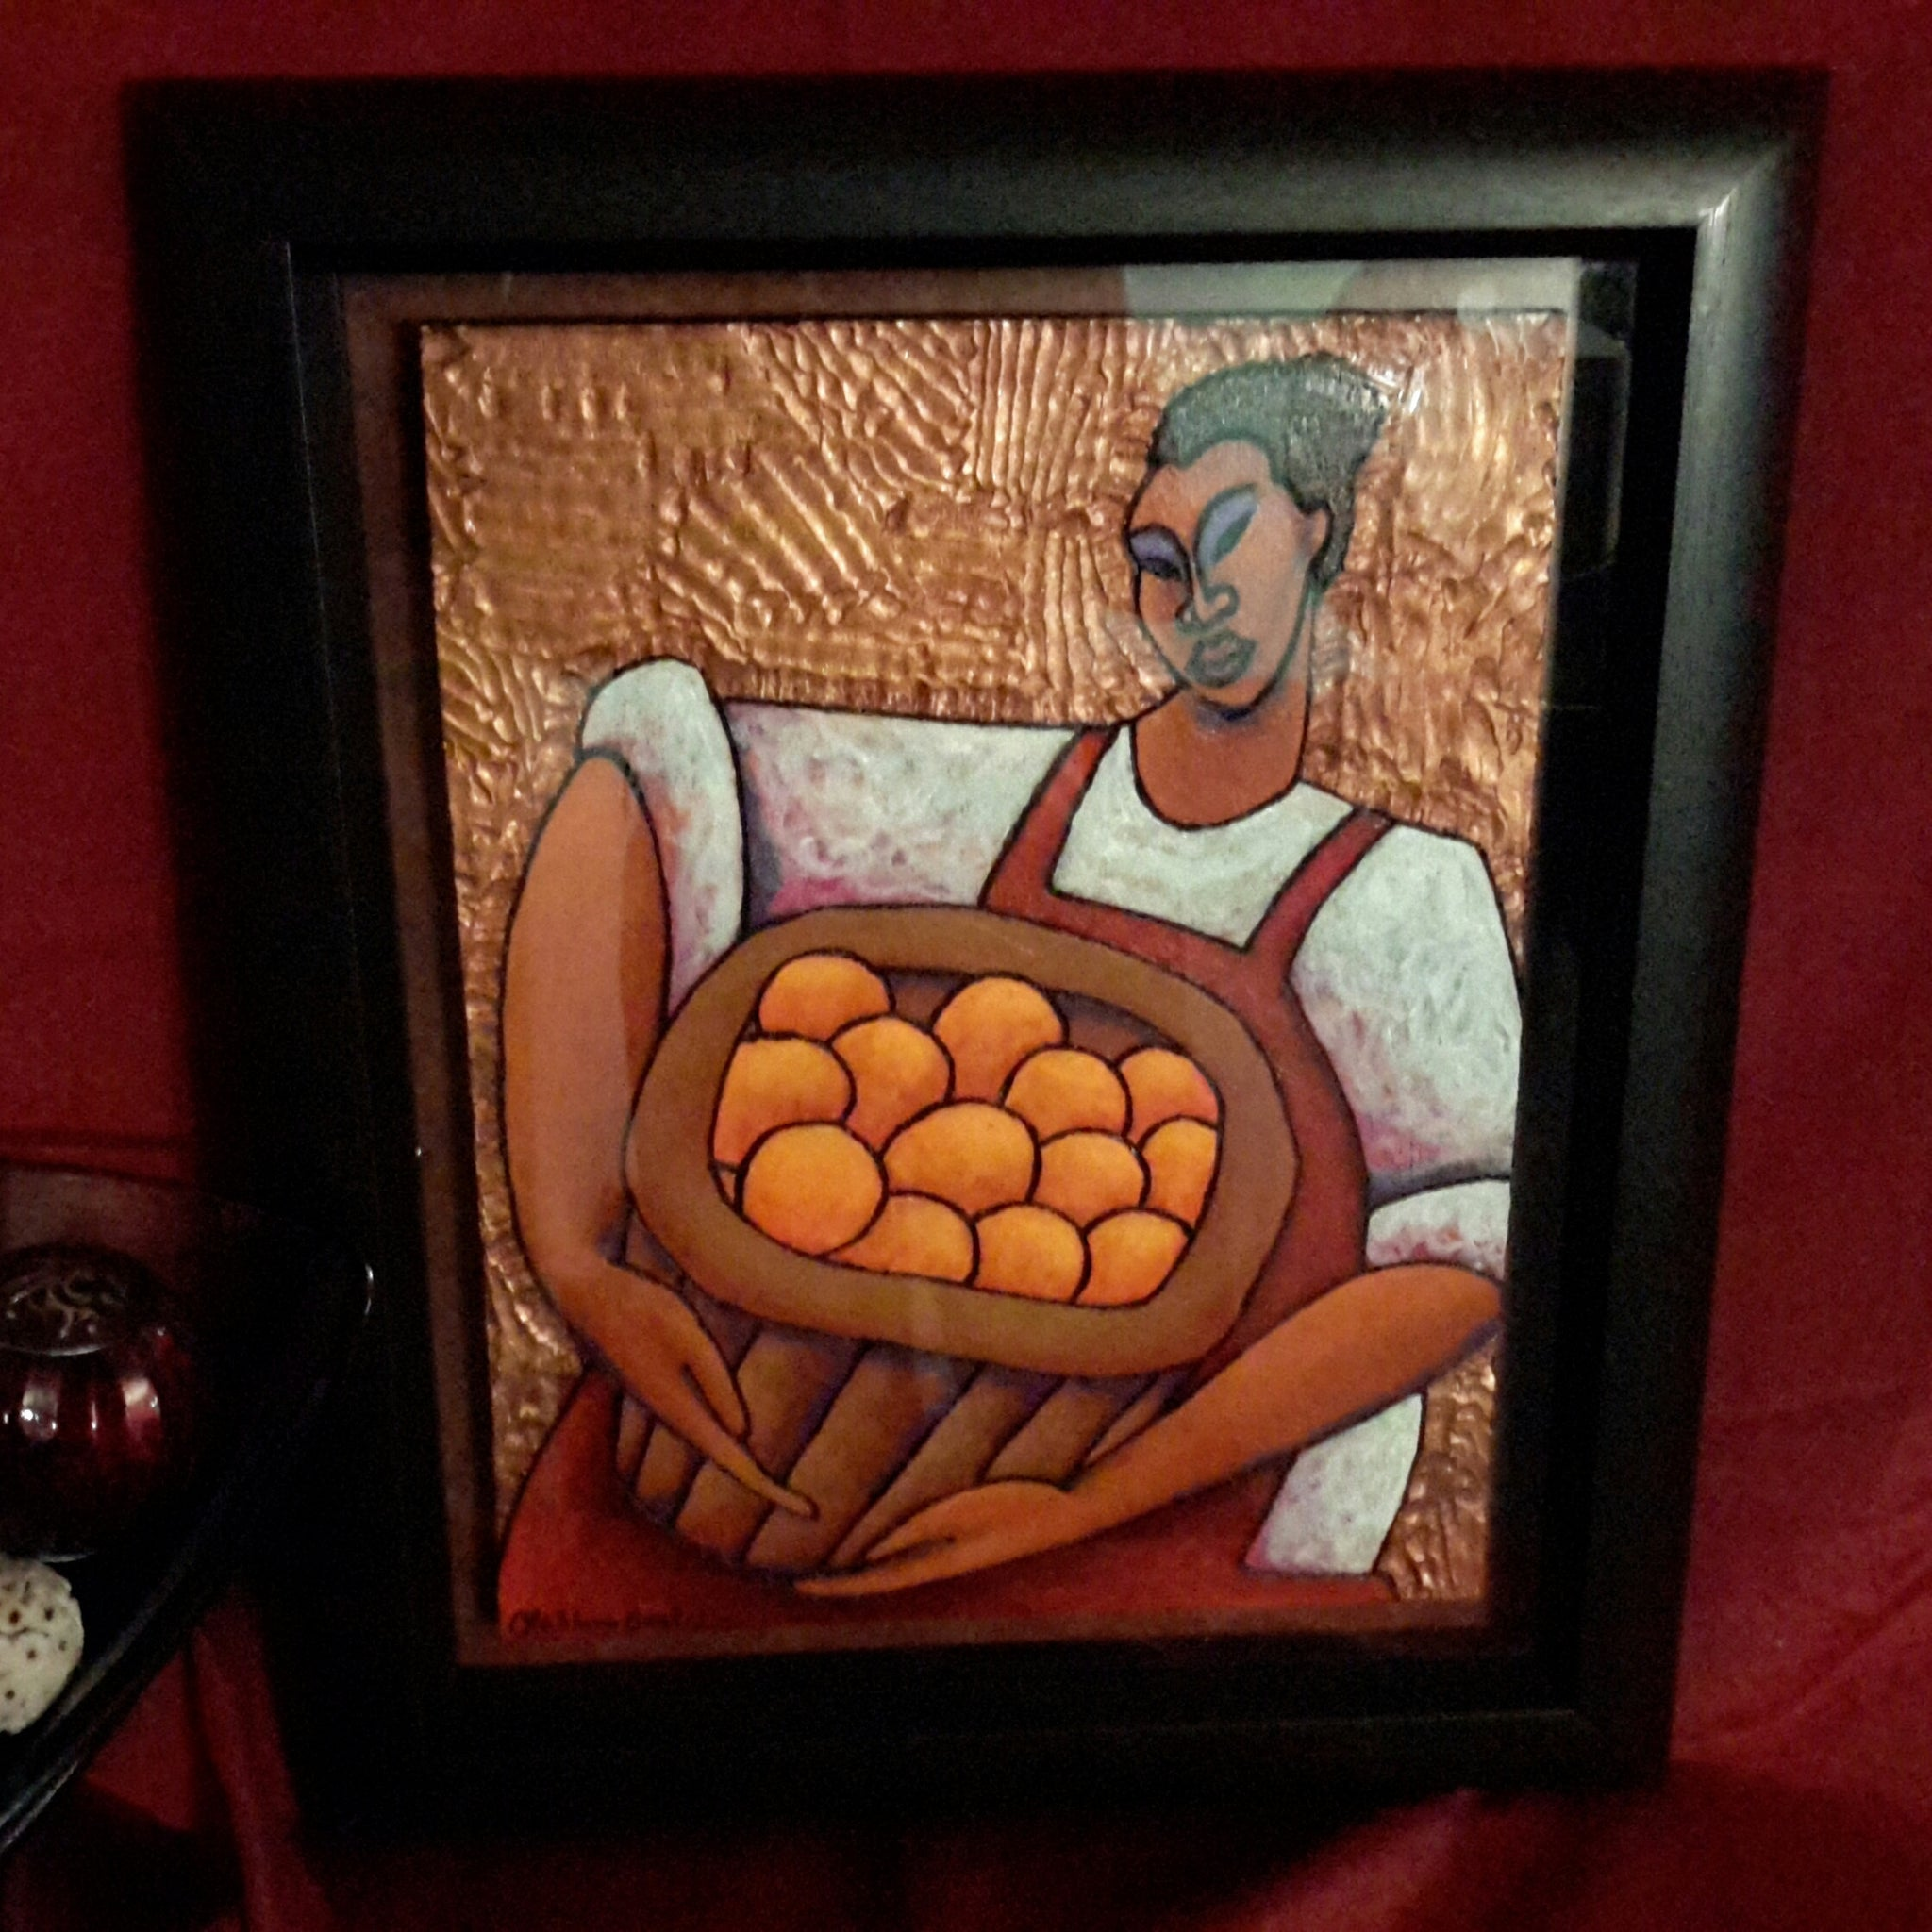 Basket Of Oranges #2- Acrylic Paint on Carved Board Art Original - Lashunbeal.com